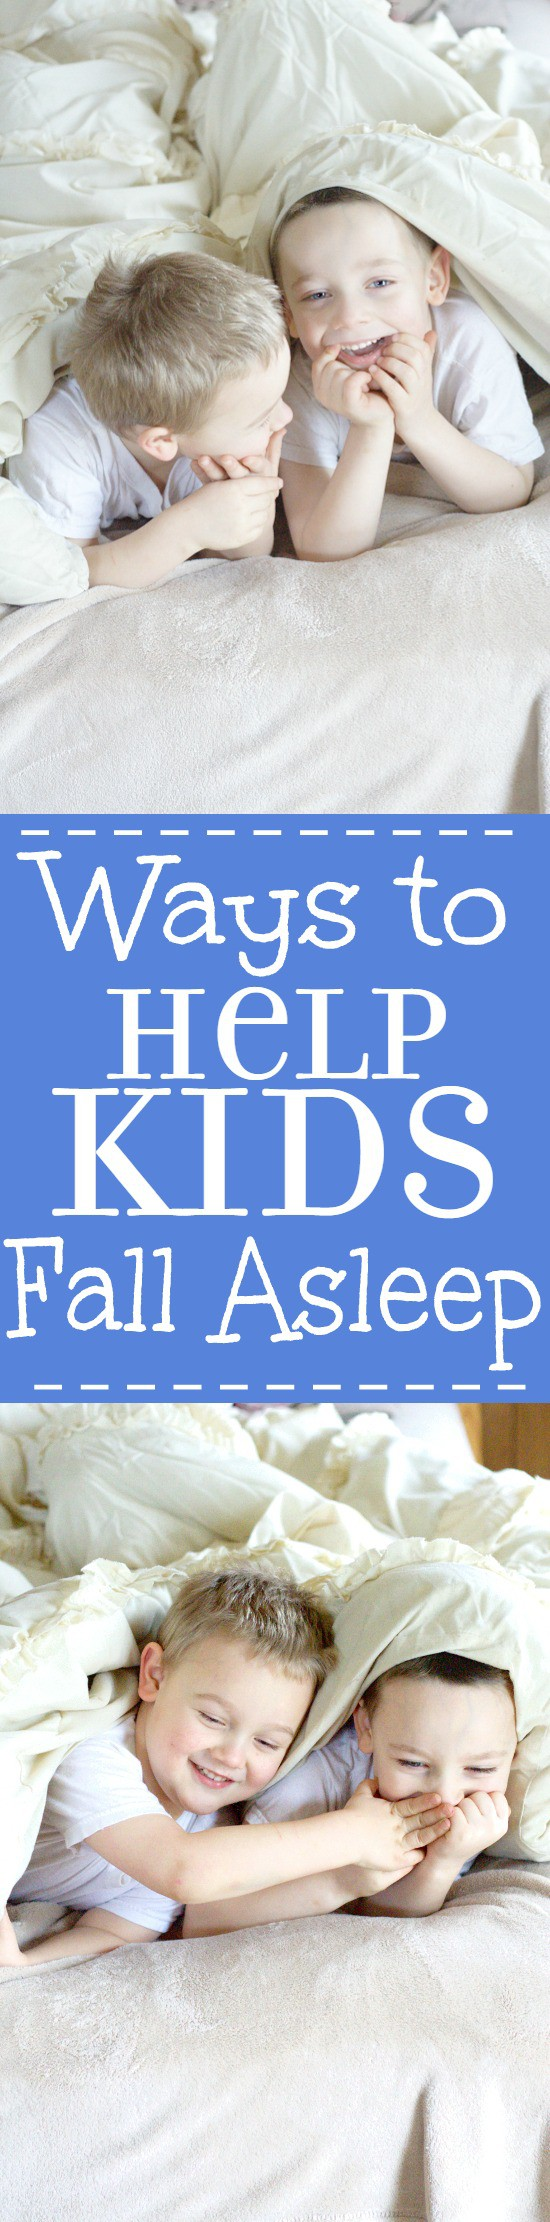 Ways to Help Kids Fall Asleep easier at night, and go to bed without a fight. Make bedtime with the kids easier and better with a simple bedtime routine and these 10 easy tips and ways to help kids fall asleep at night. | Parenting | Kids